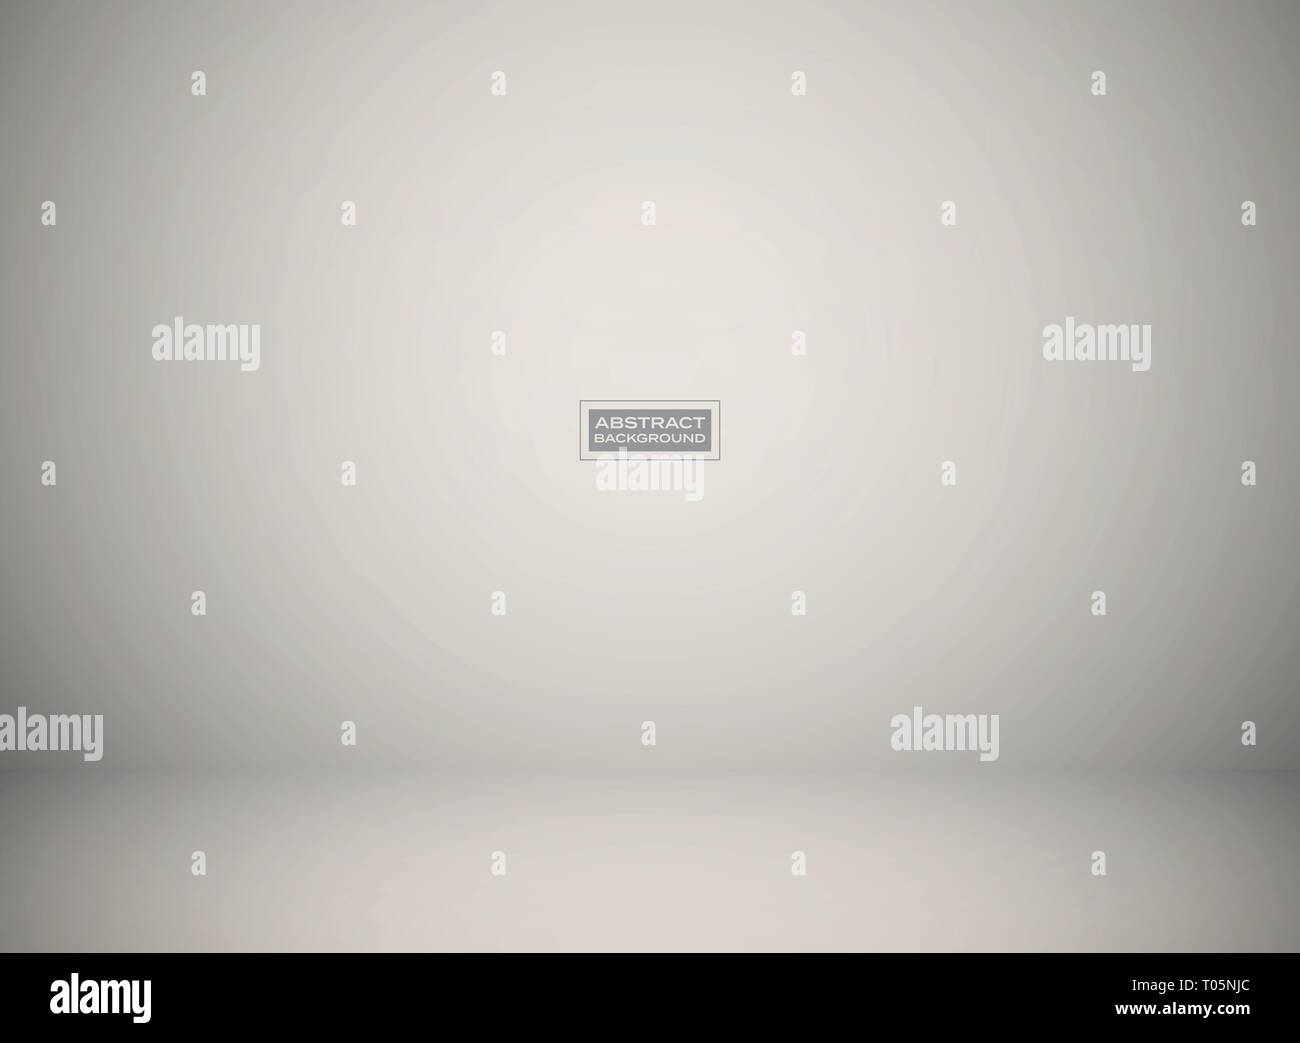 Abstract gradient gray studio background for presentation. You can use for product presentation, ad, poster, artwork. illustration vector eps10 - Stock Vector